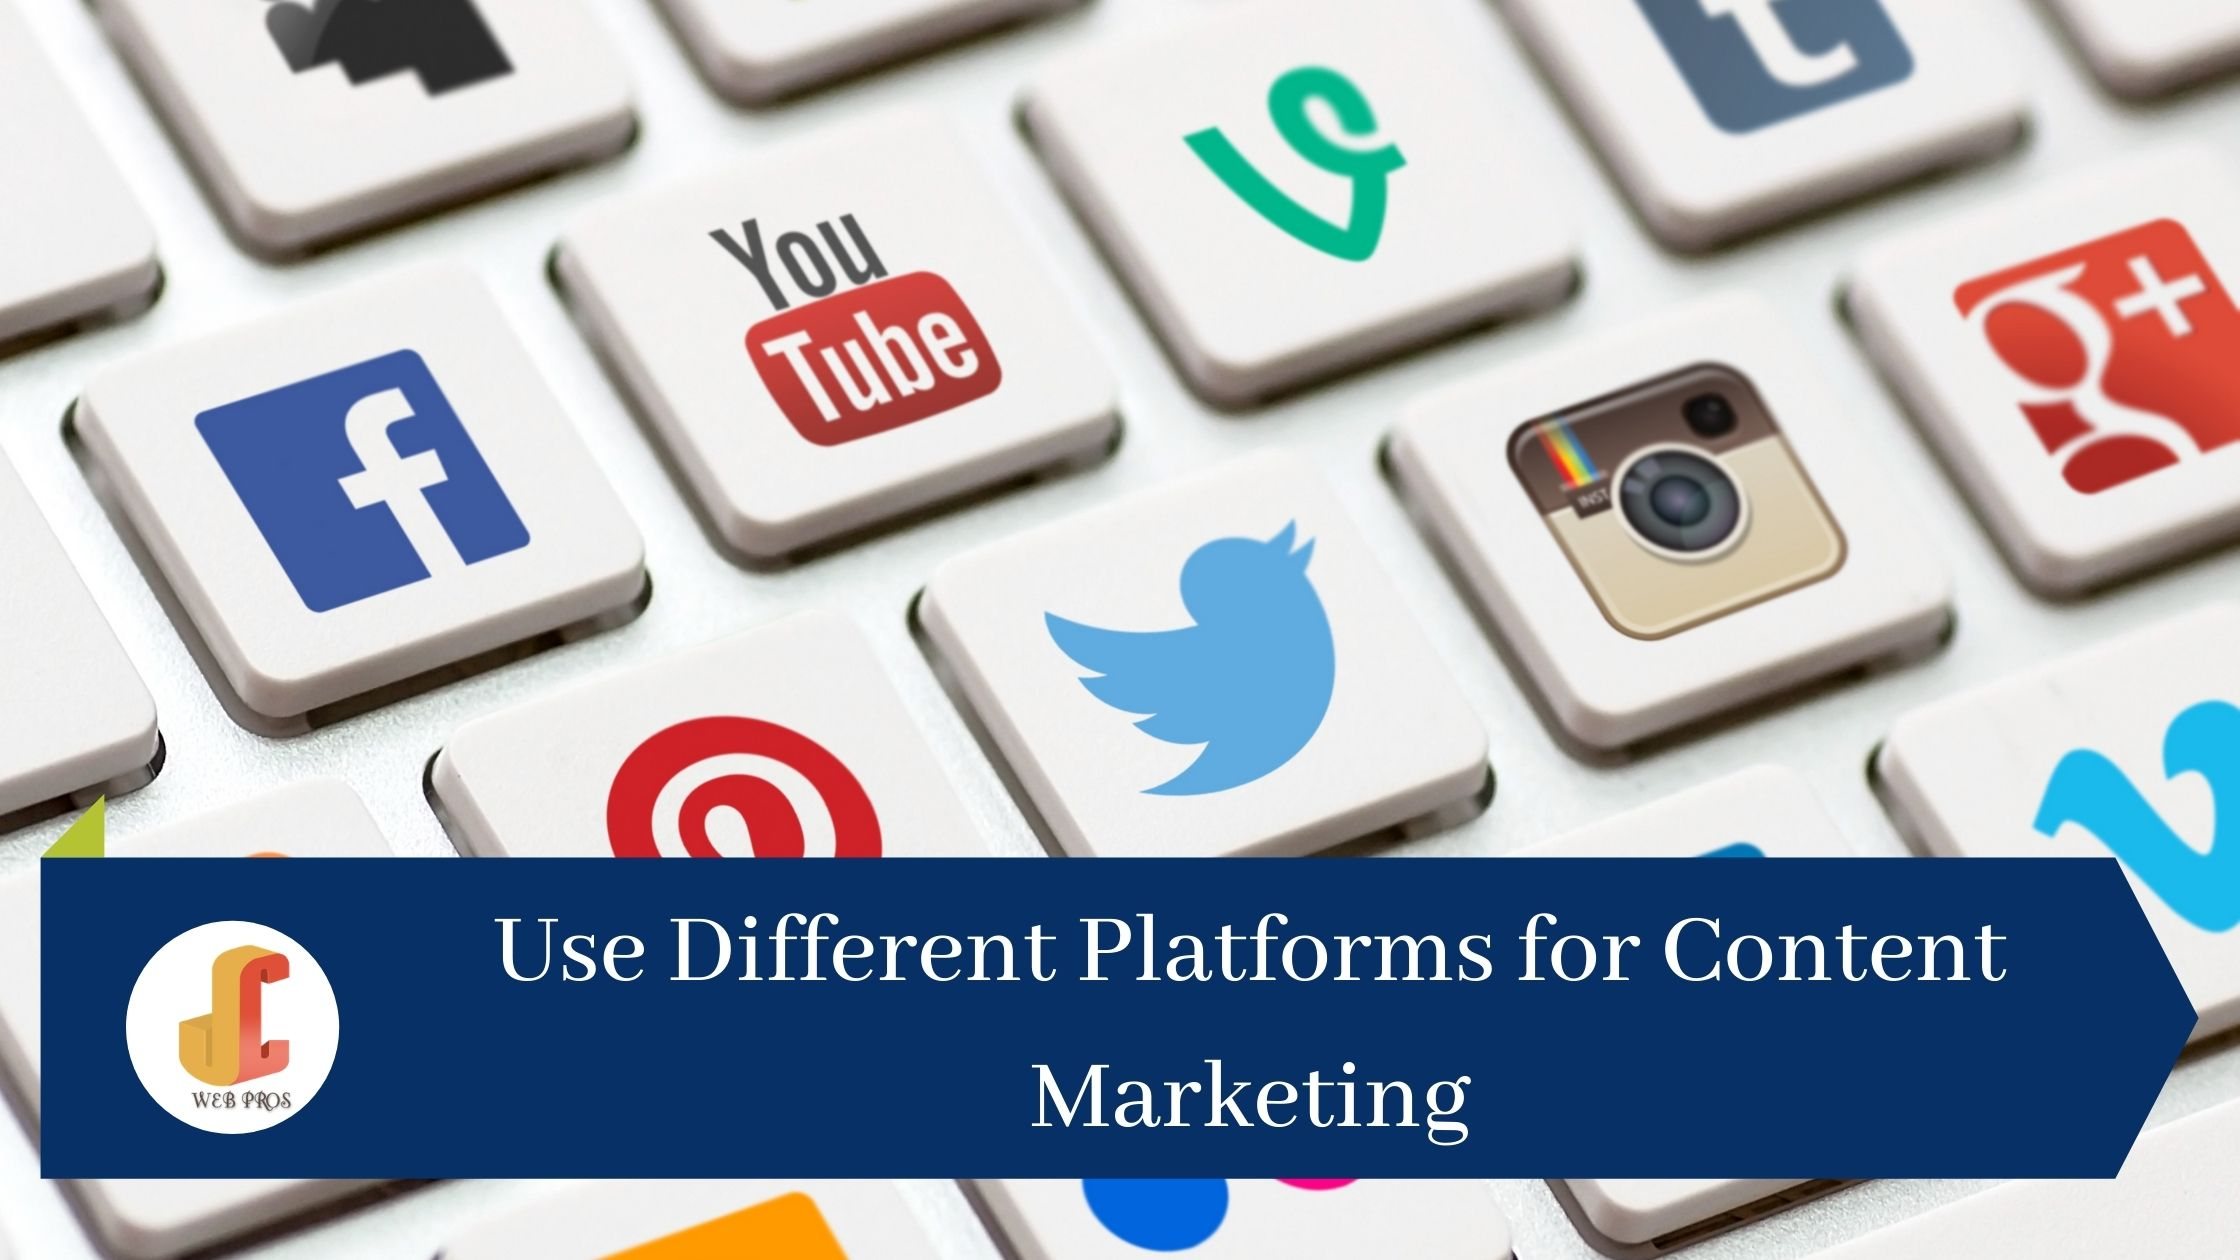 Use Different Platforms for Content Marketing